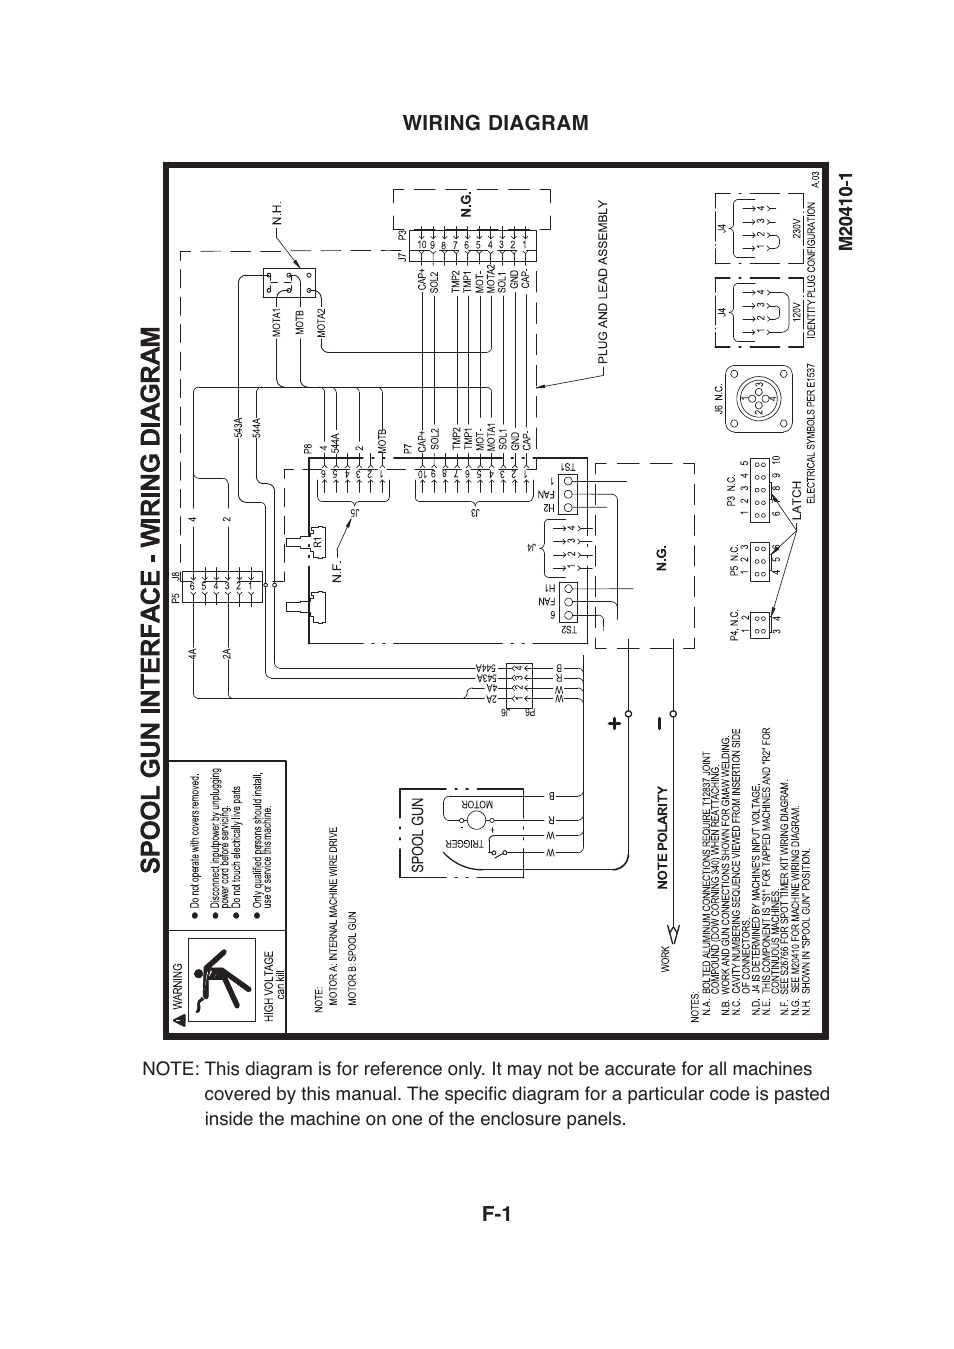 DIAGRAM] Kohler 40 Magnum Wiring Diagrams FULL Version HD Quality ...